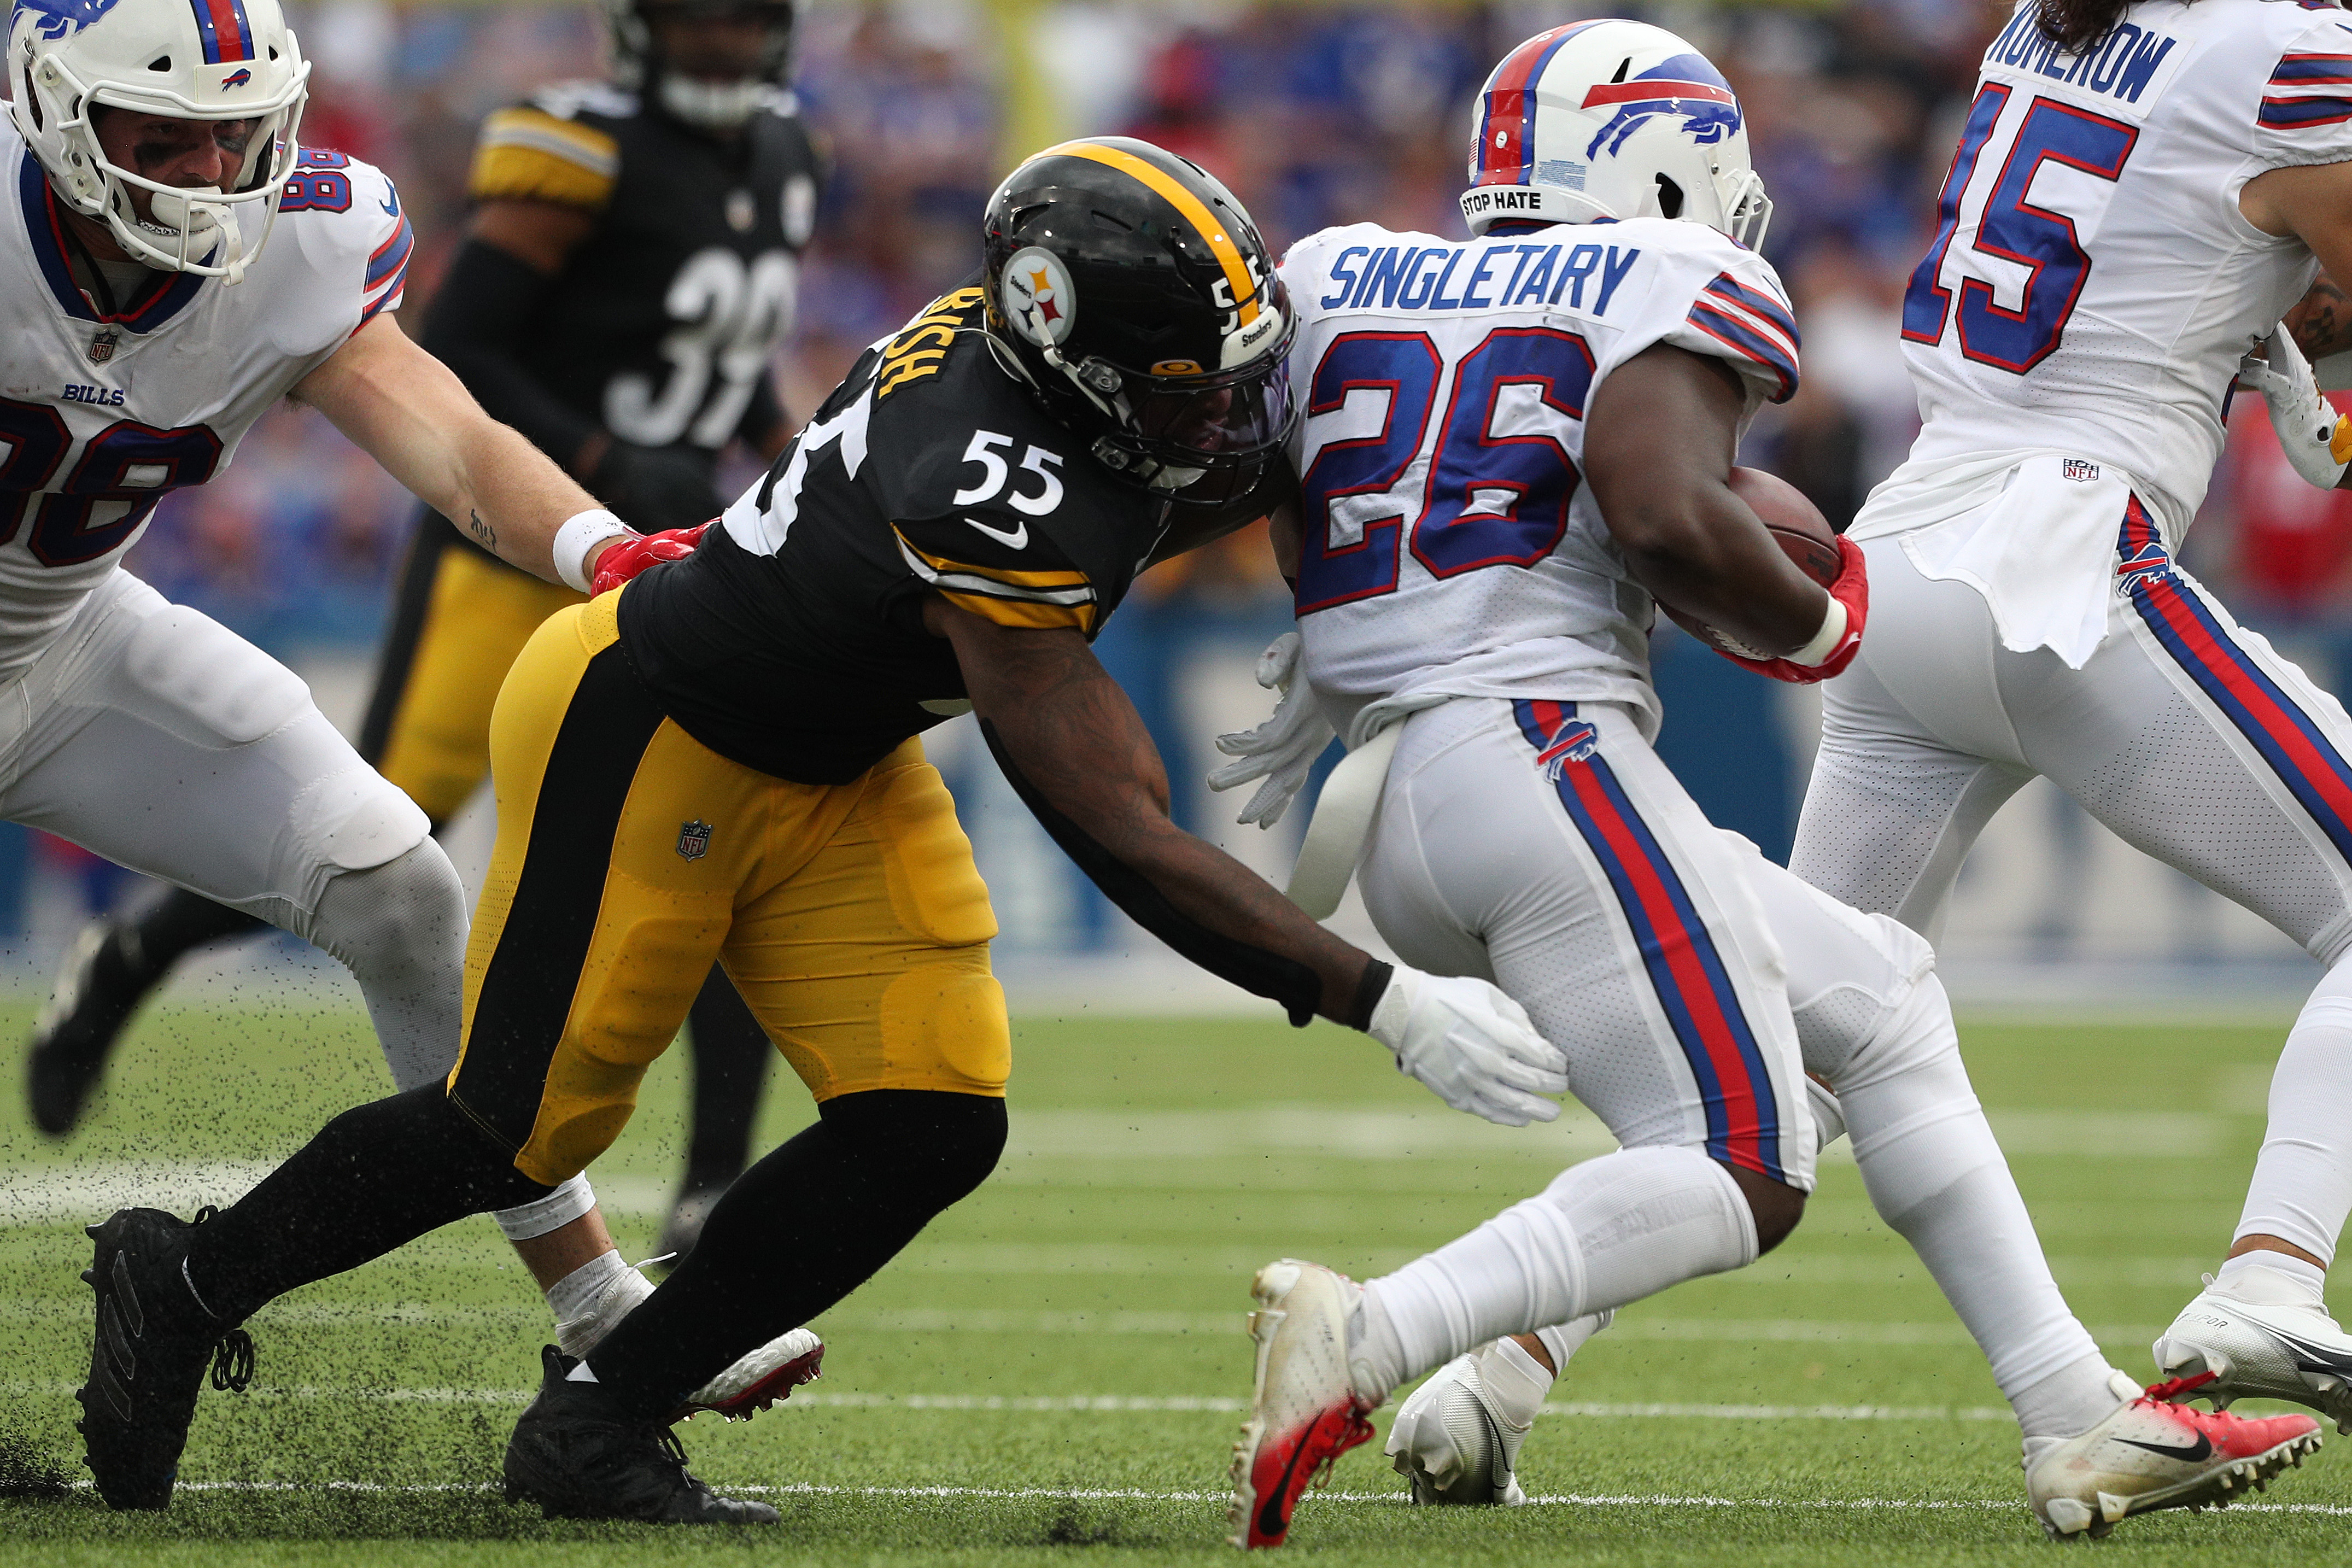 Devin Bush #55 of the Pittsburgh Steelers hits Devin Singletary #26 of the Buffalo Bills during the second half at Highmark Stadium on September 12, 2021 in Orchard Park, New York.